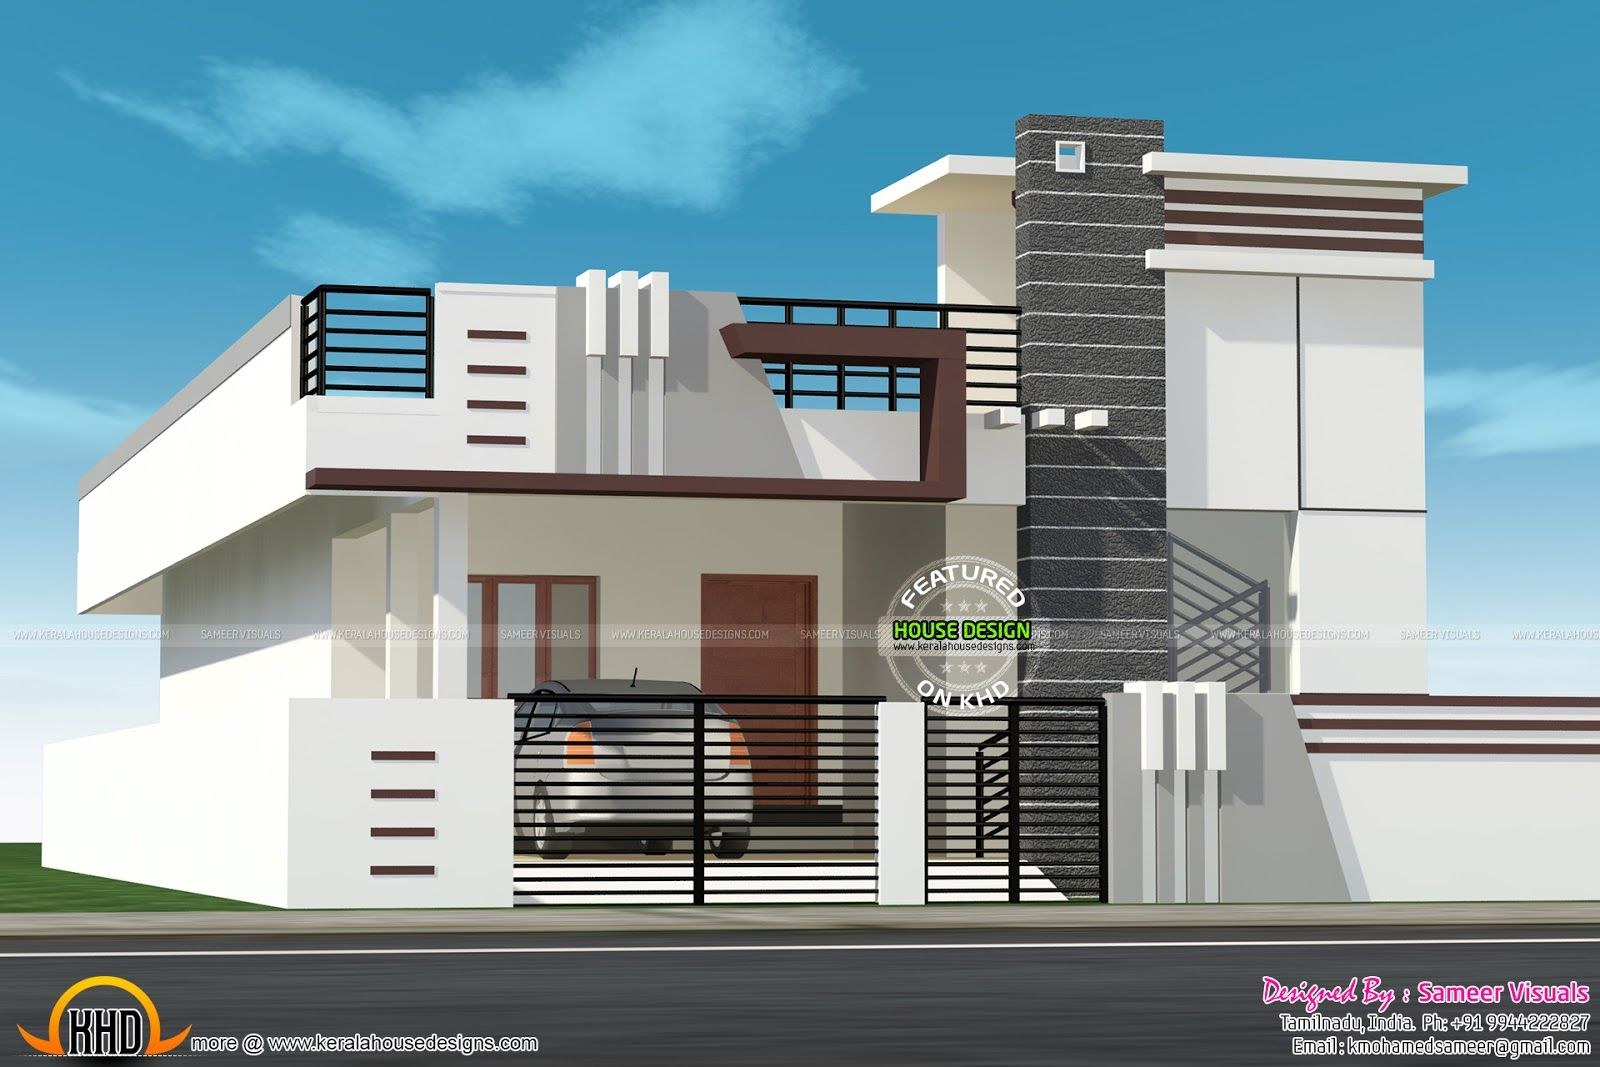 Ordinary Front Design Of House Construction In India Part - 9: Small House With Car Parking Construction Elevation - Google Search